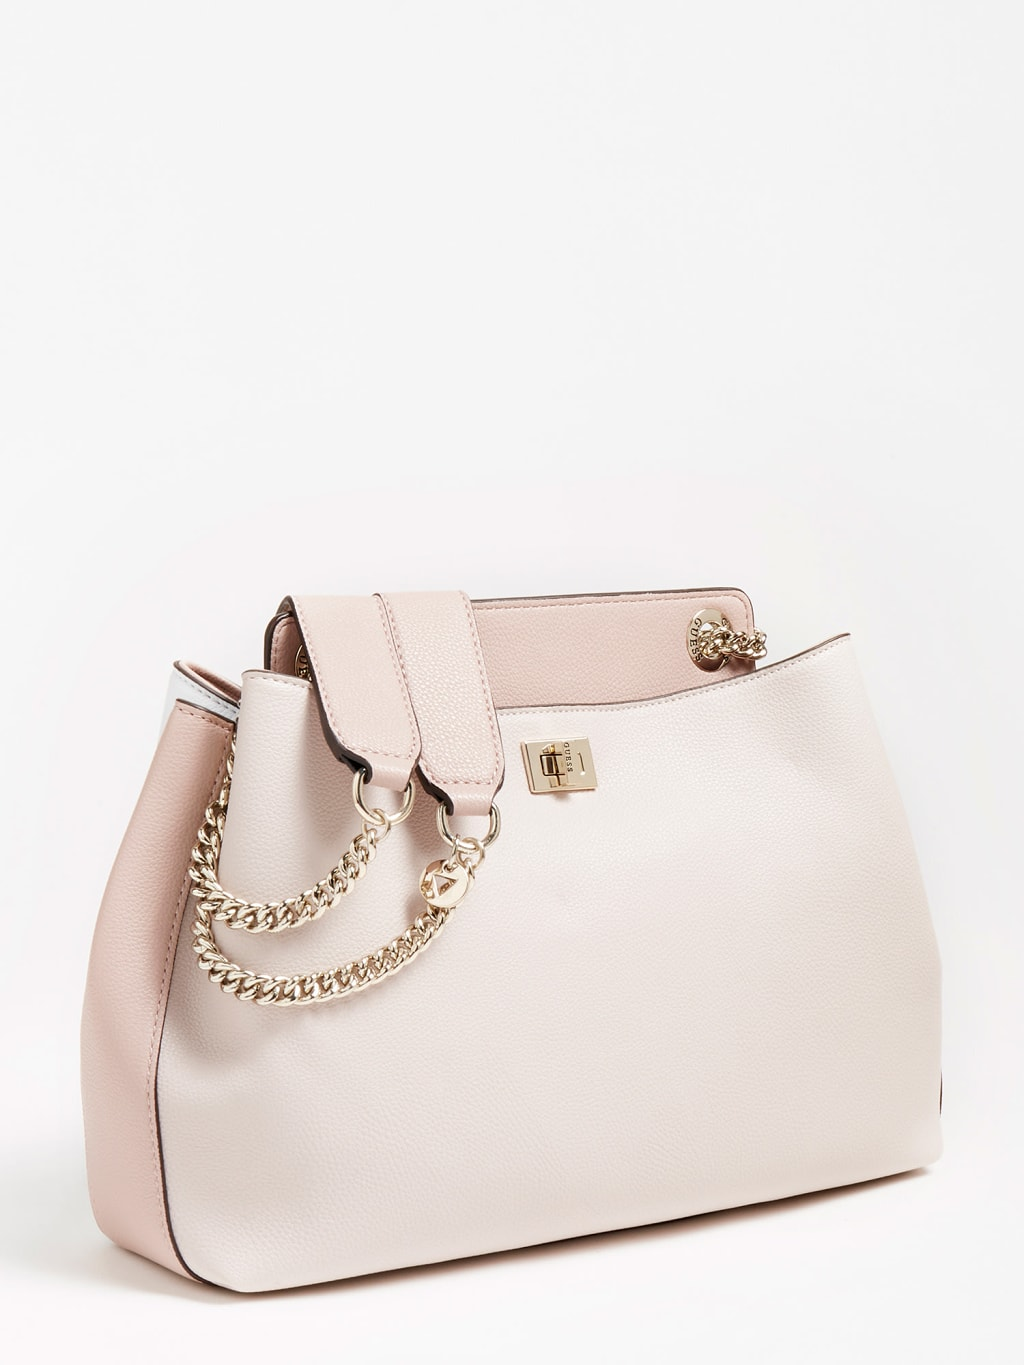 Guess Sandrine Shoulder Satchel White